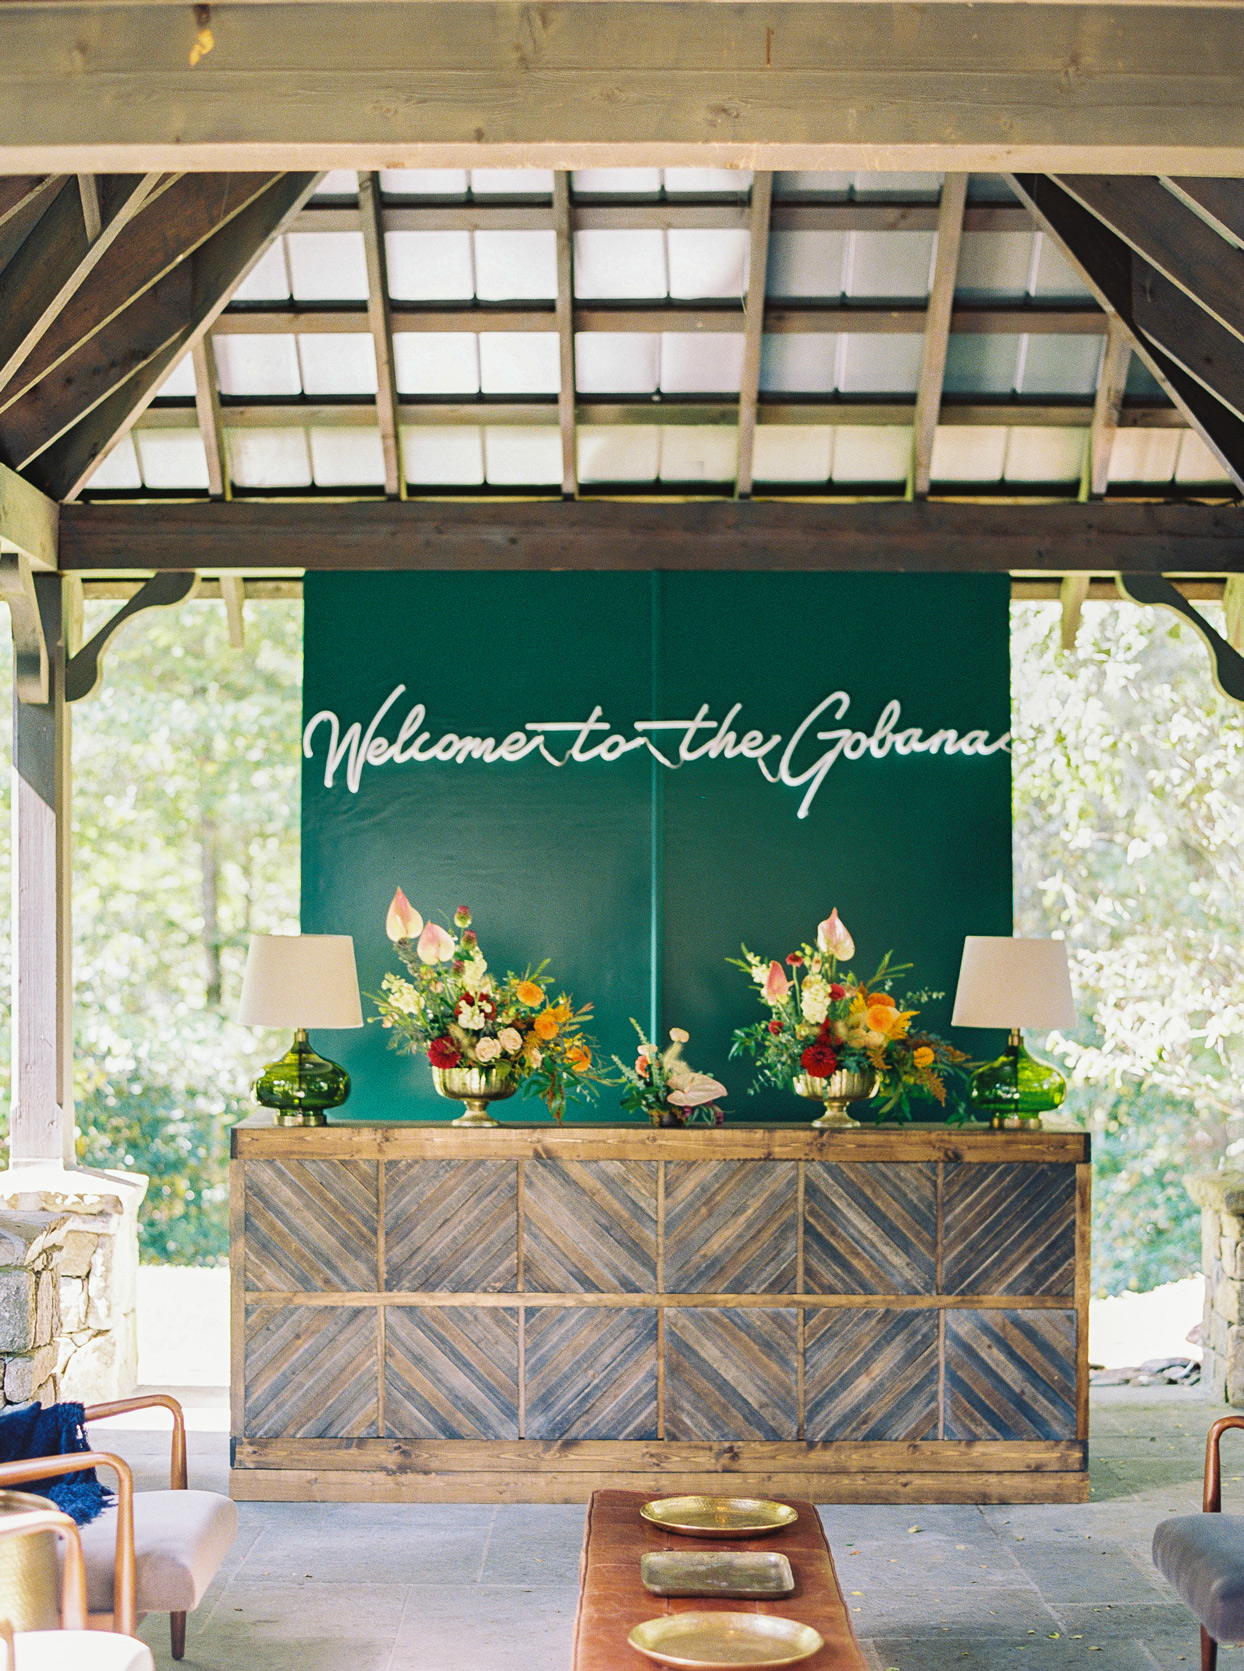 """Bar at wedding with sign that reads """"Welcome to the Gobana"""""""